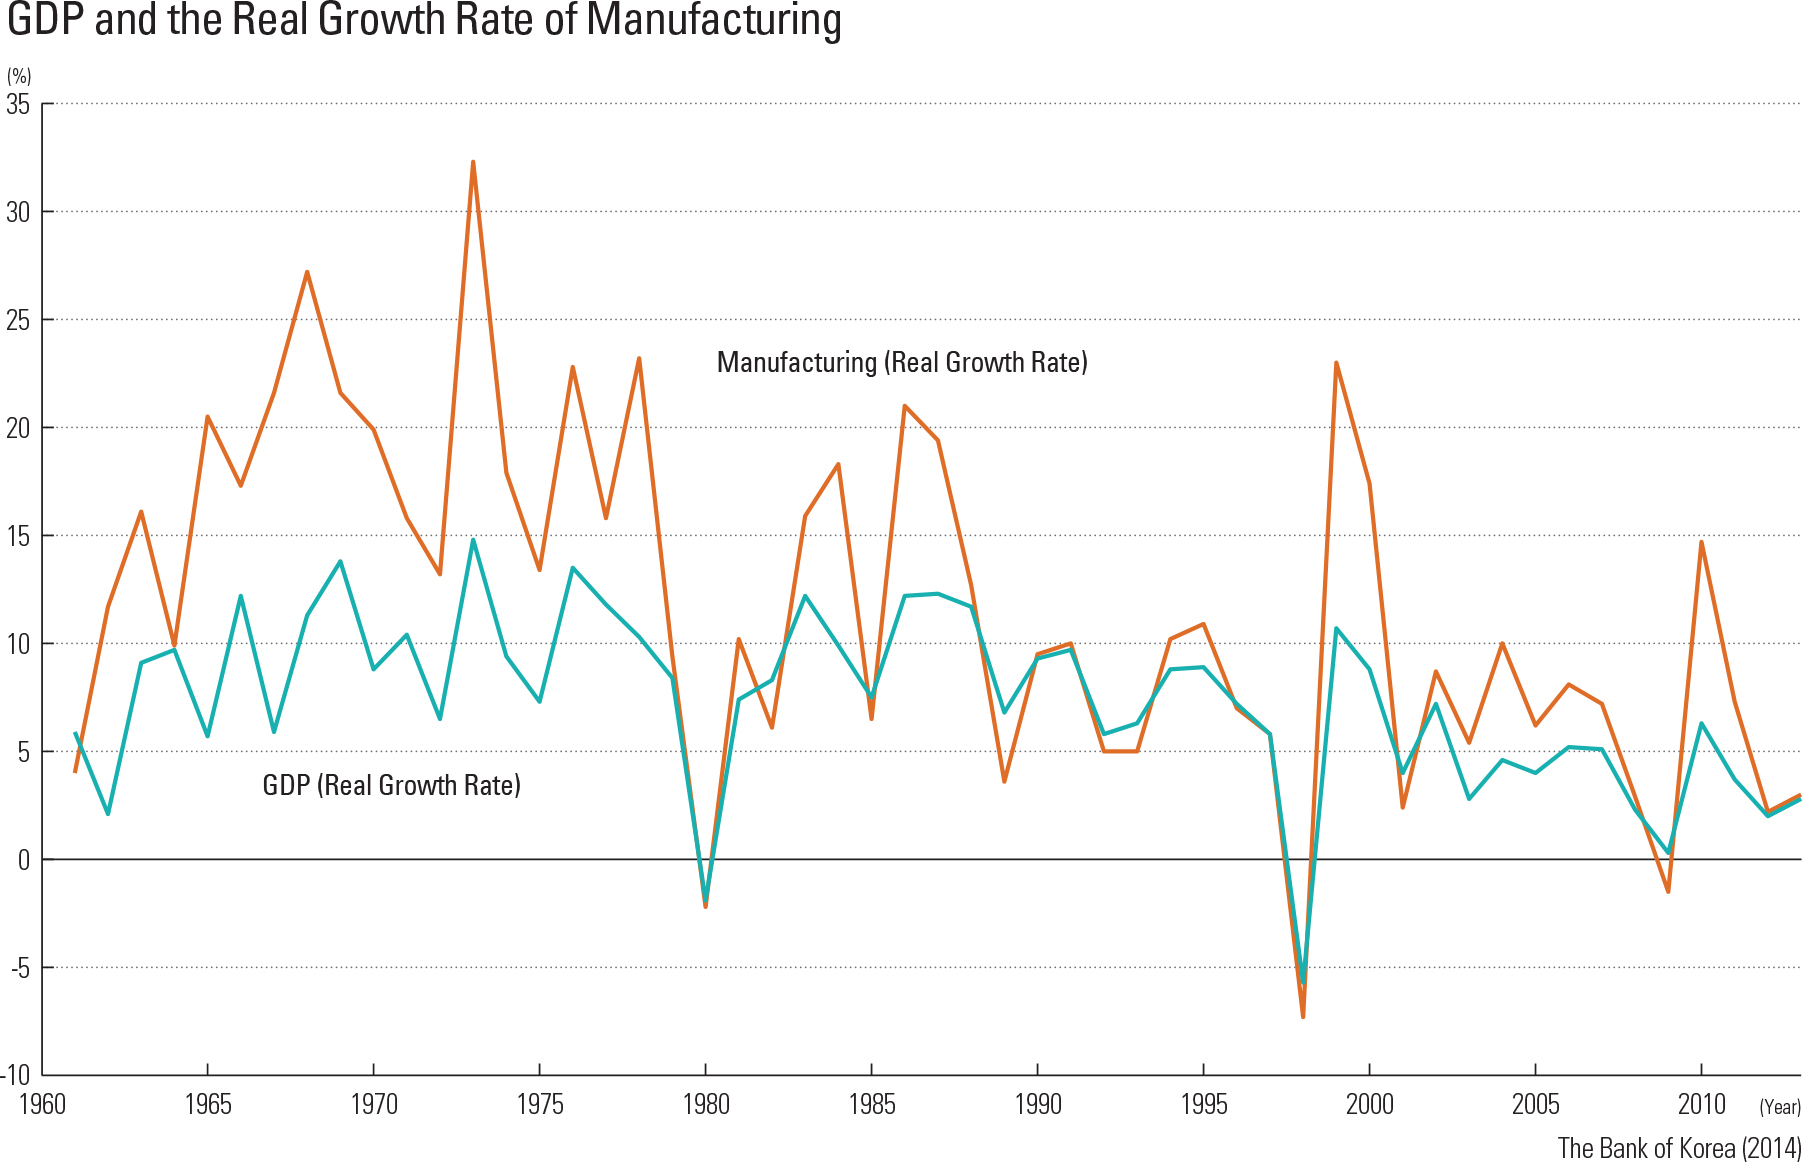 """GDP and the Real Growth Rate of Manufacturing<p class=""""oz_zoom"""" zimg=""""http://imagedata.cafe24.com/us_1/us1_96-1_2.jpg""""><span style=""""font-family:Nanum Myeongjo;""""><span style=""""font-size:18px;""""><span class=""""label label-danger"""">UPDATE DATA</span></span></p>"""